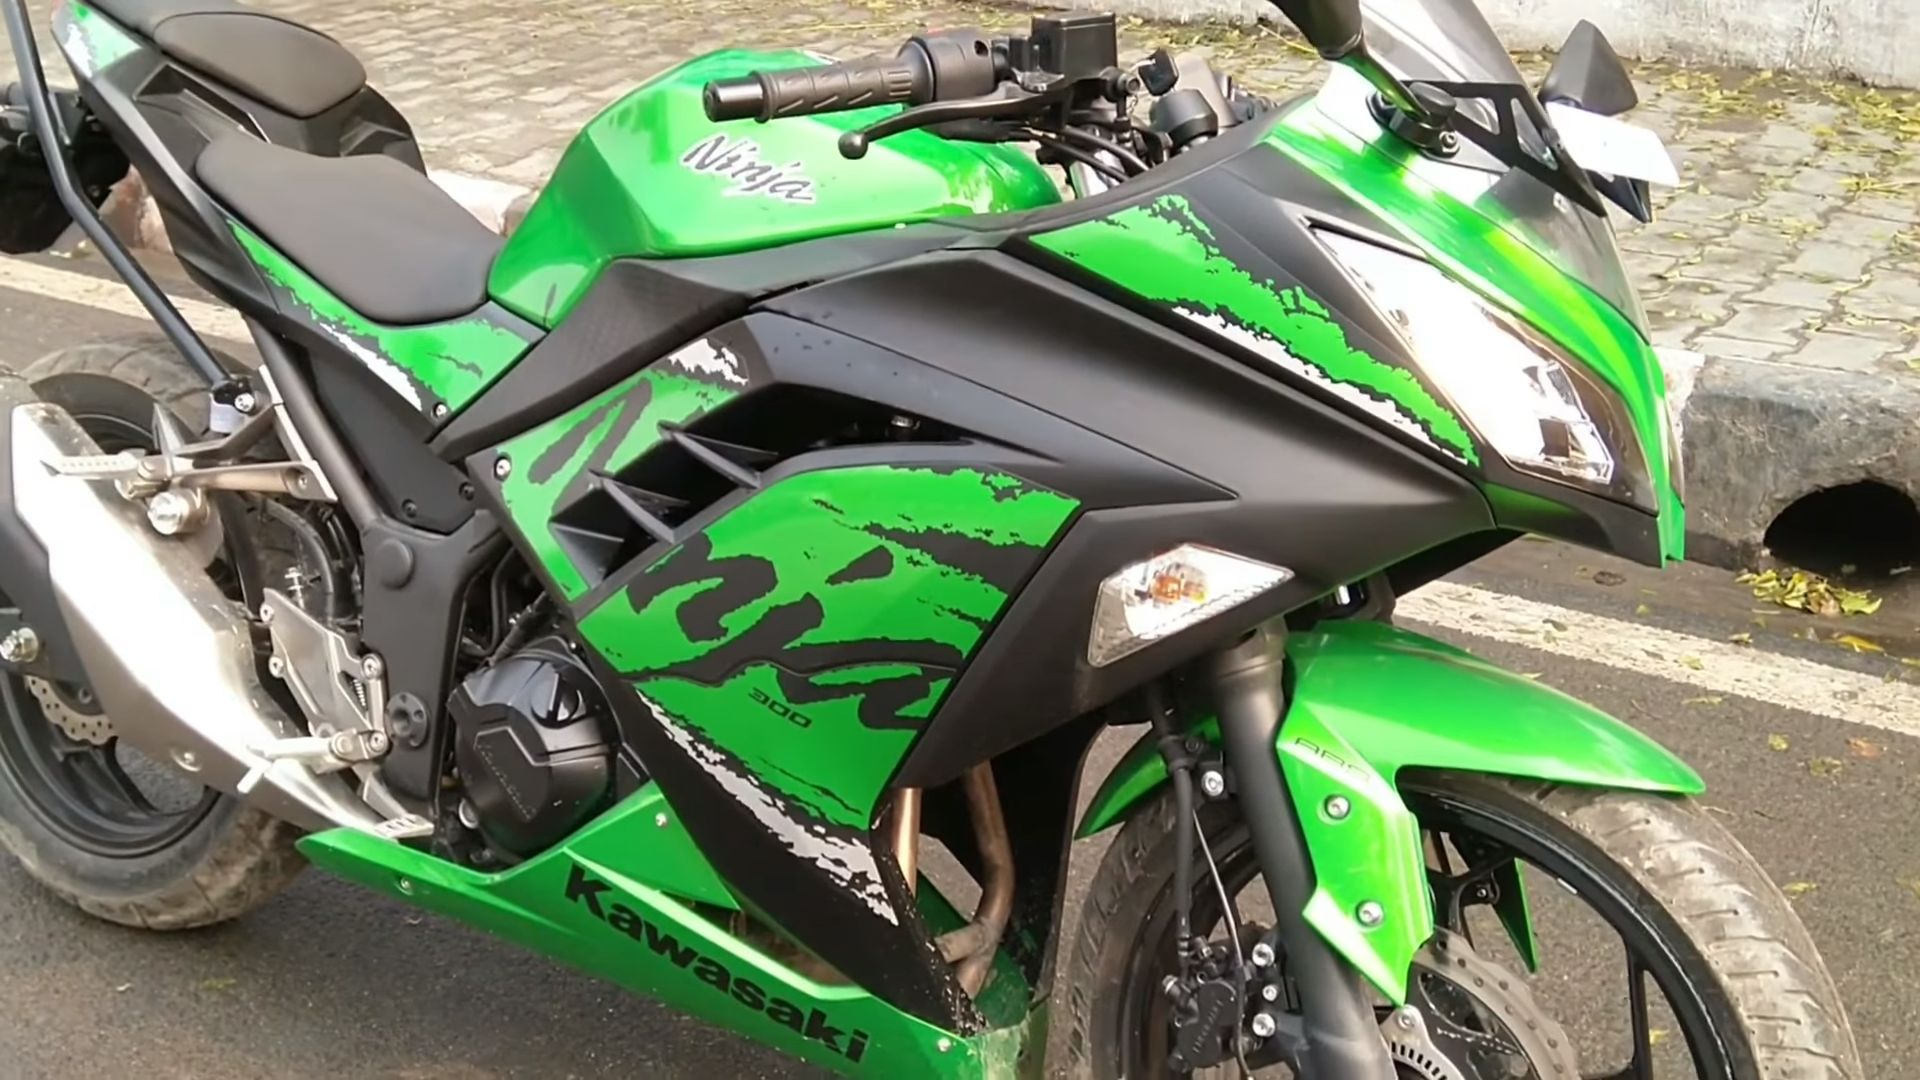 HD Pics of Kawasaki Ninja 300